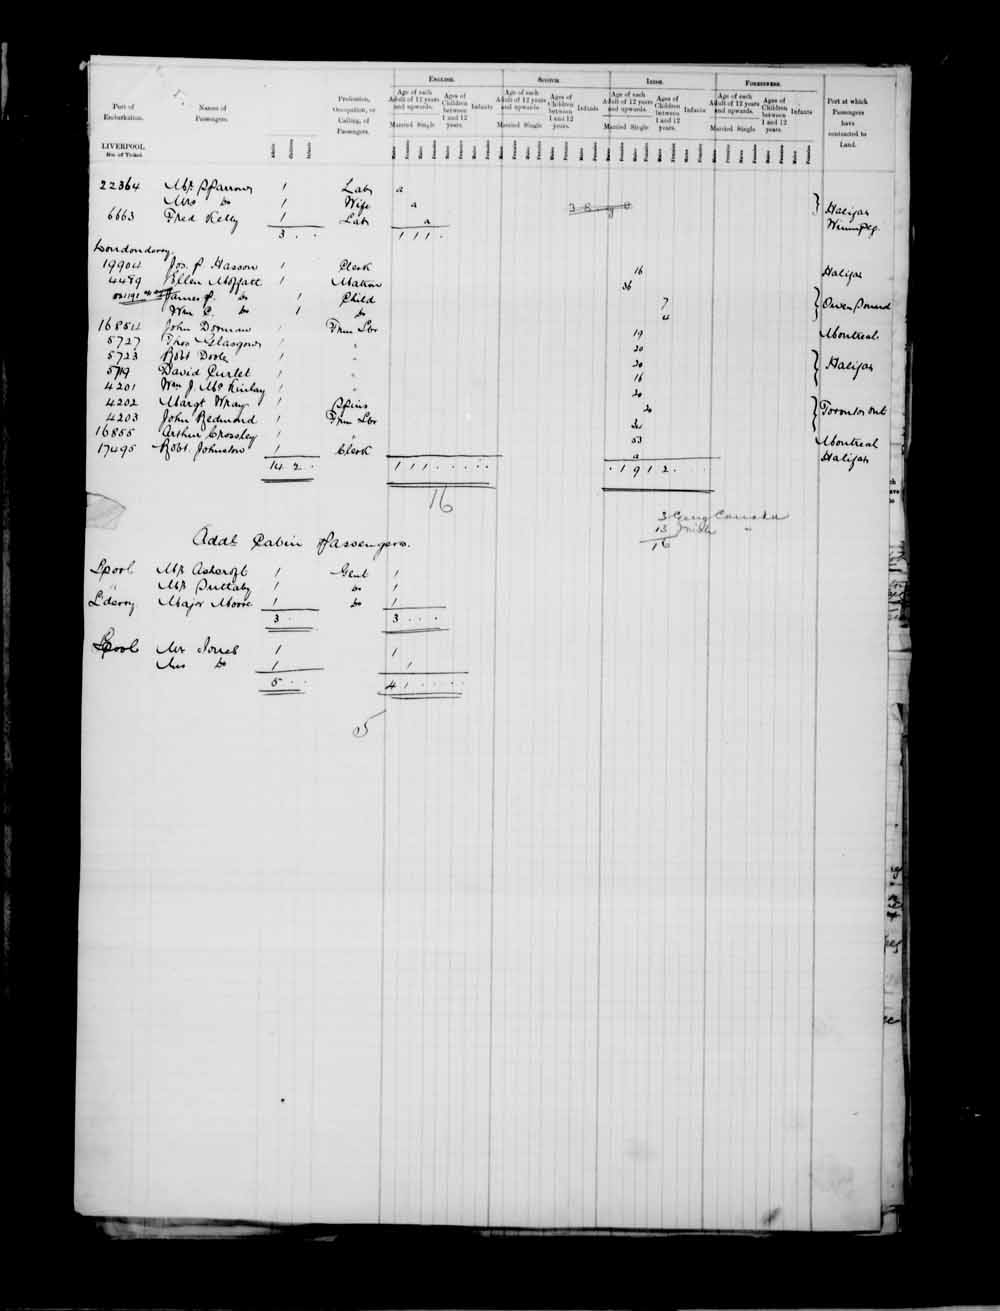 Digitized page of Passenger Lists for Image No.: e003679115